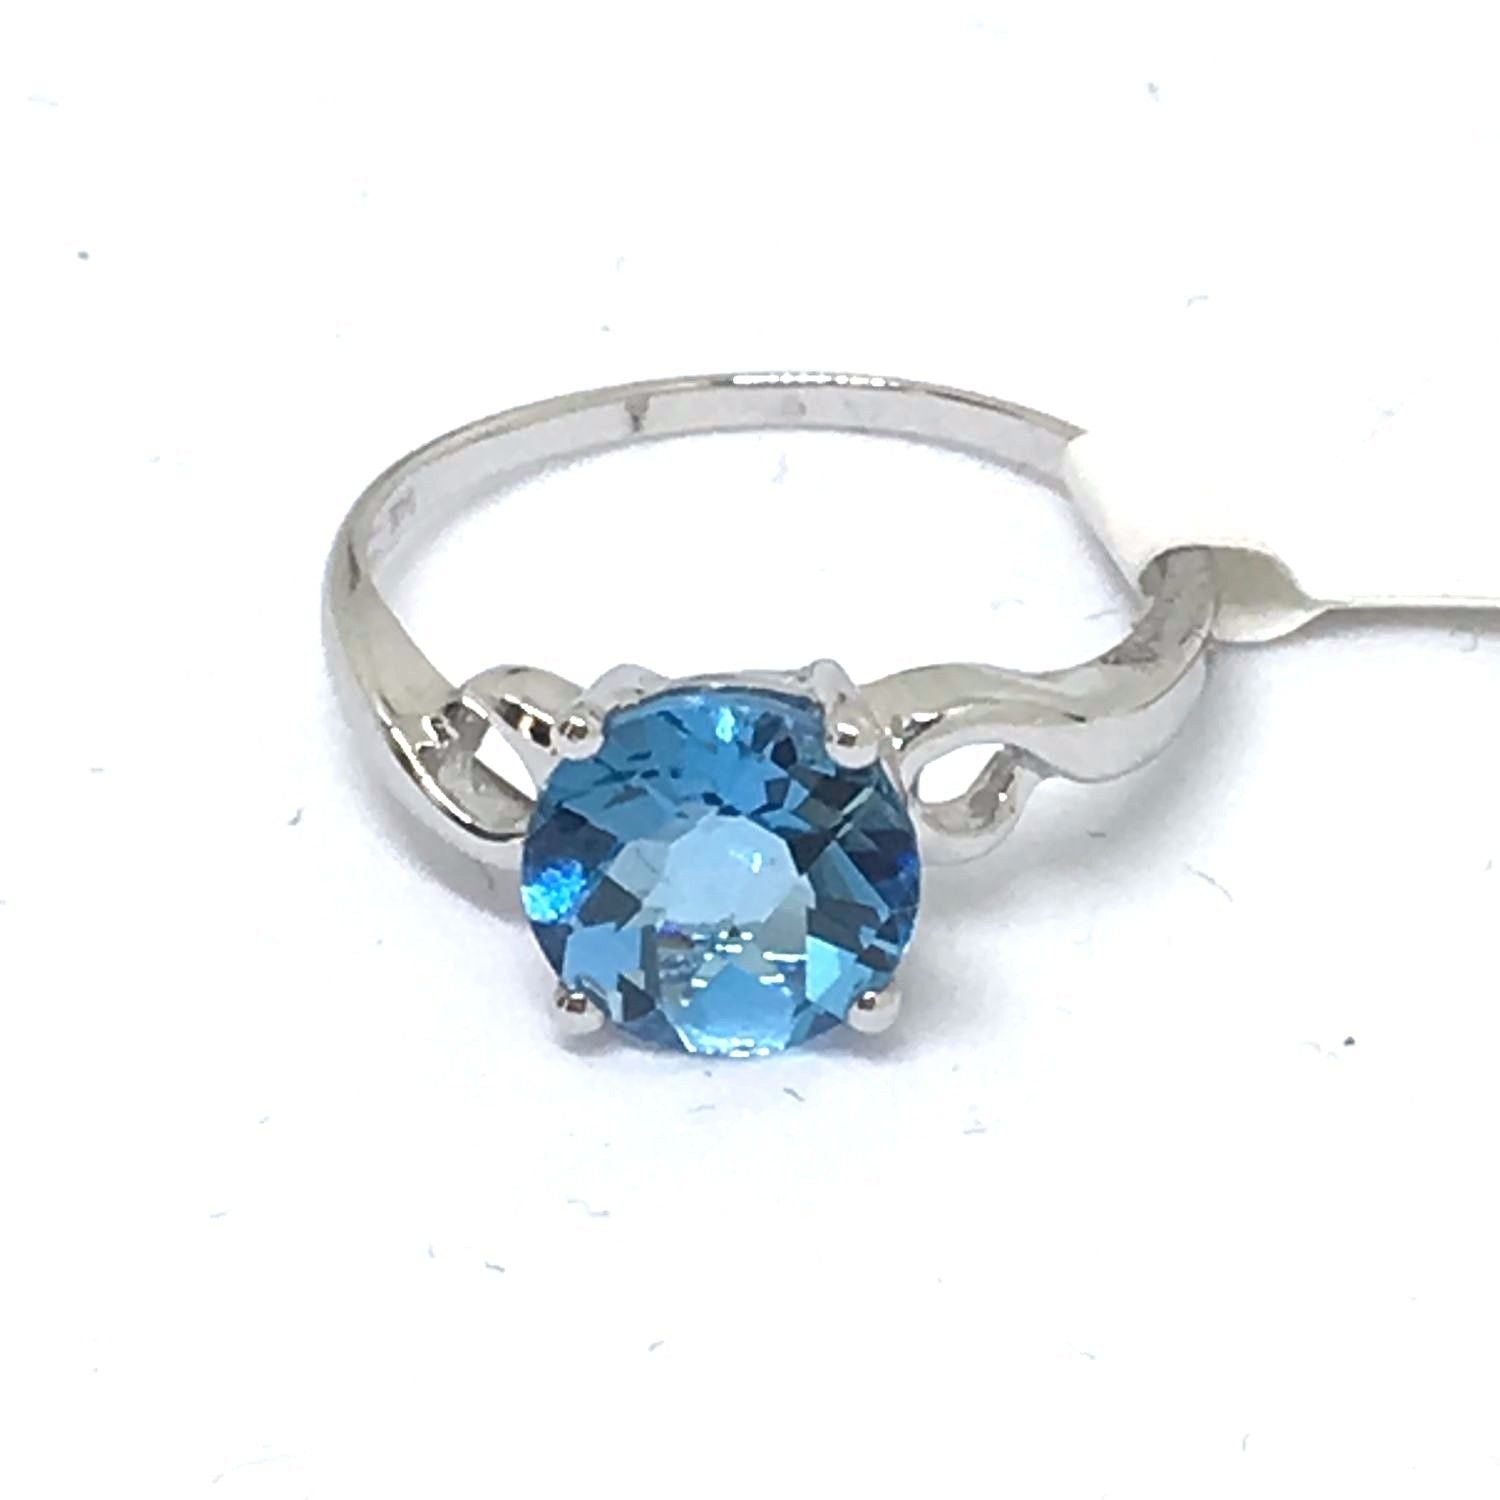 14K white gold and Genuine 2.35K Blue Topaz Ring, 2.3 grams $850 NWT Size 6 1/2